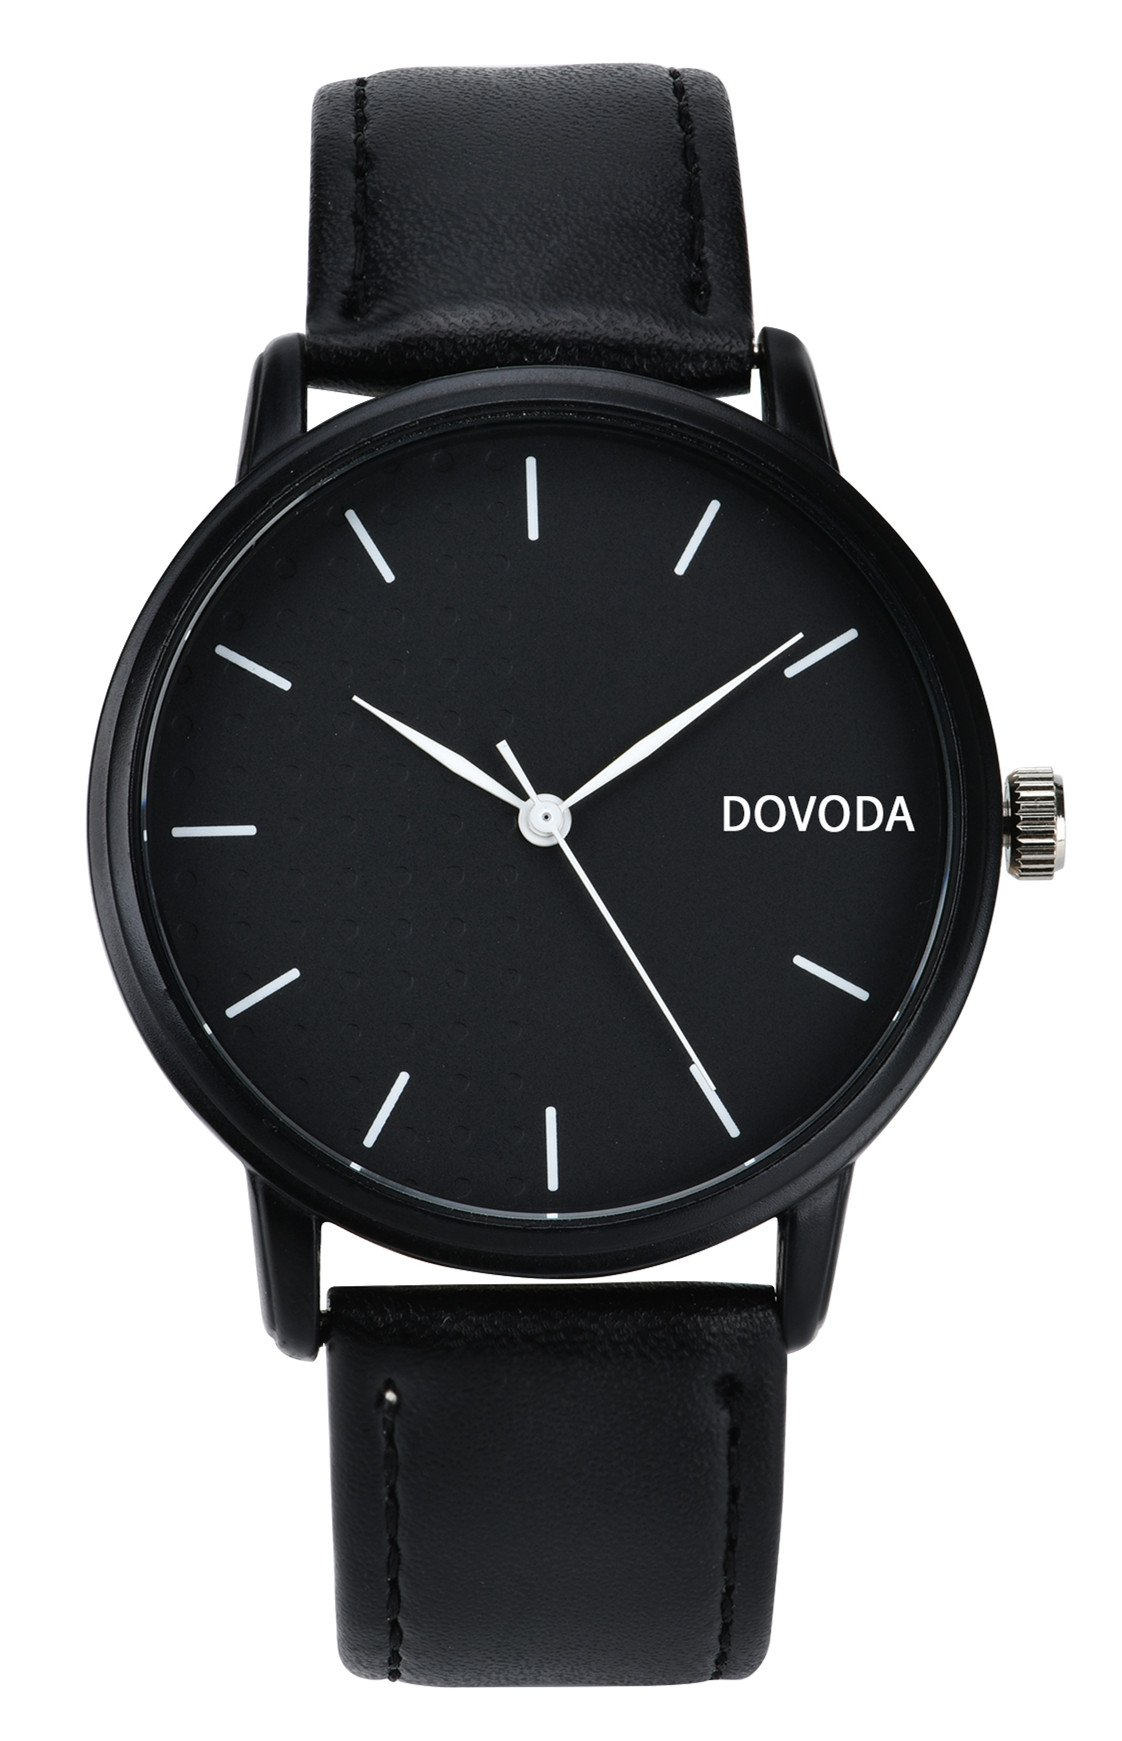 Dovoda watches for men casual classy quartz analog leather watch amazon for Dovoda watches